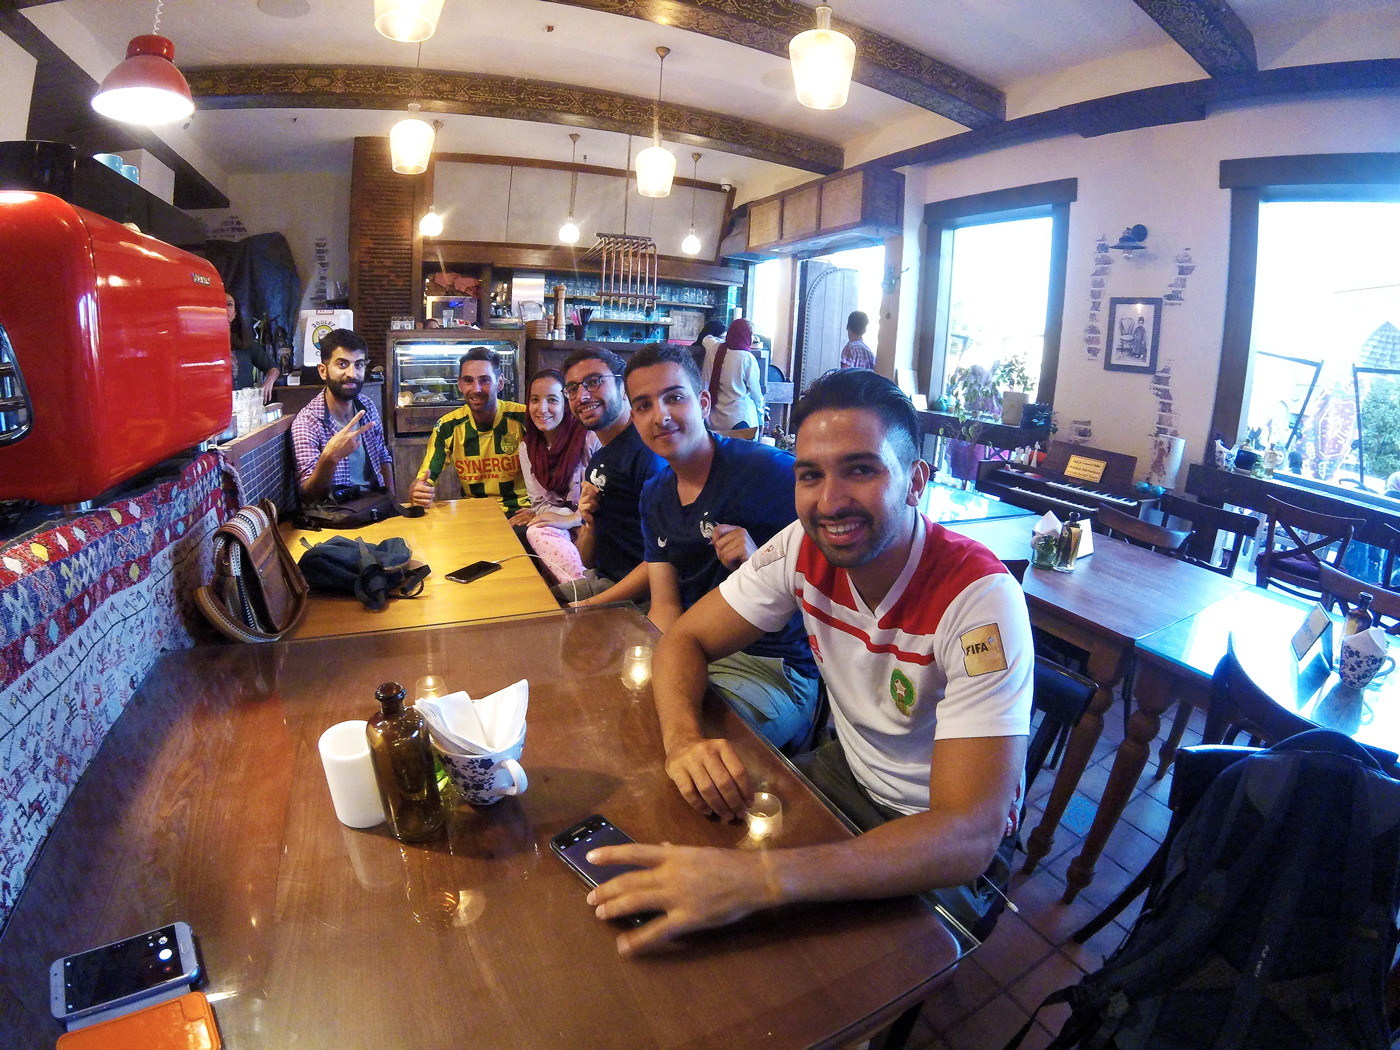 Bike trip, cross Iran by bike, at Café Joulep in Shiraz to see the final of the World Cup football 2018 France-Croatia. Cycling travel, biketouring, cycling Iran, at Joulep Cafe in Shiraz to see the final of the Football World Cup 2018 France-Croatia.